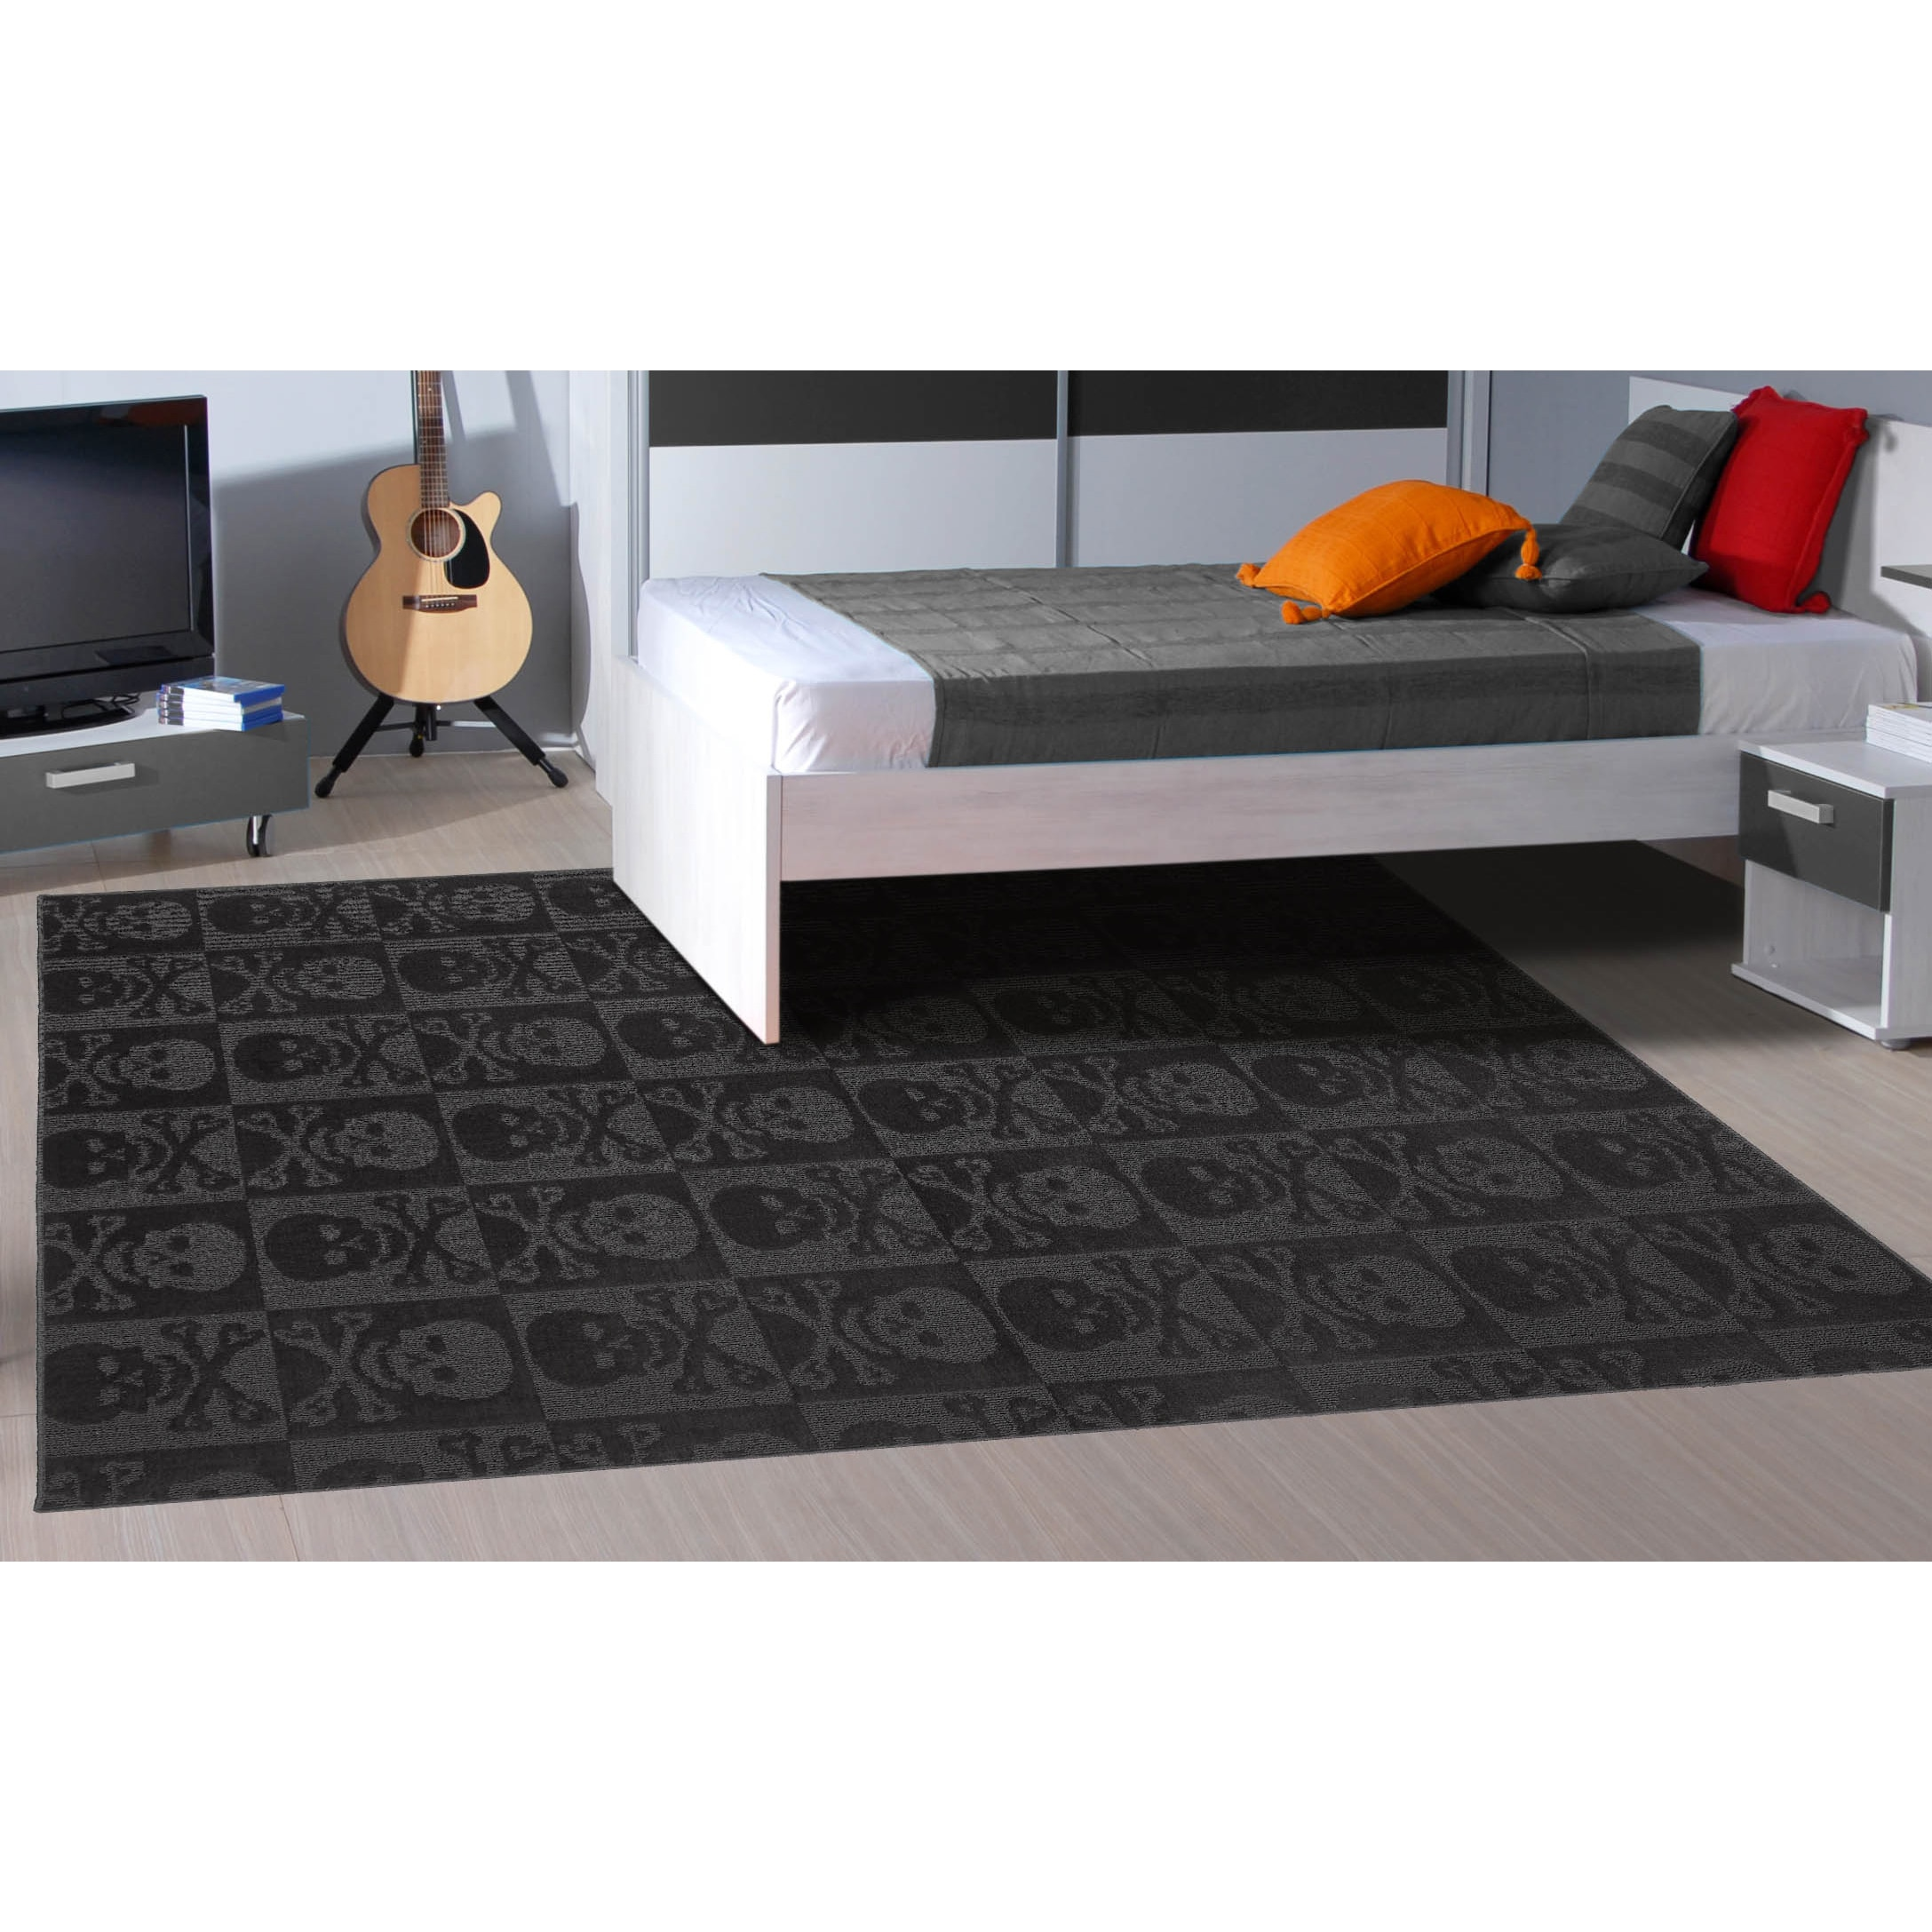 Design Black Rug your zone black tinsel fur rug 26 x 32 walmart com